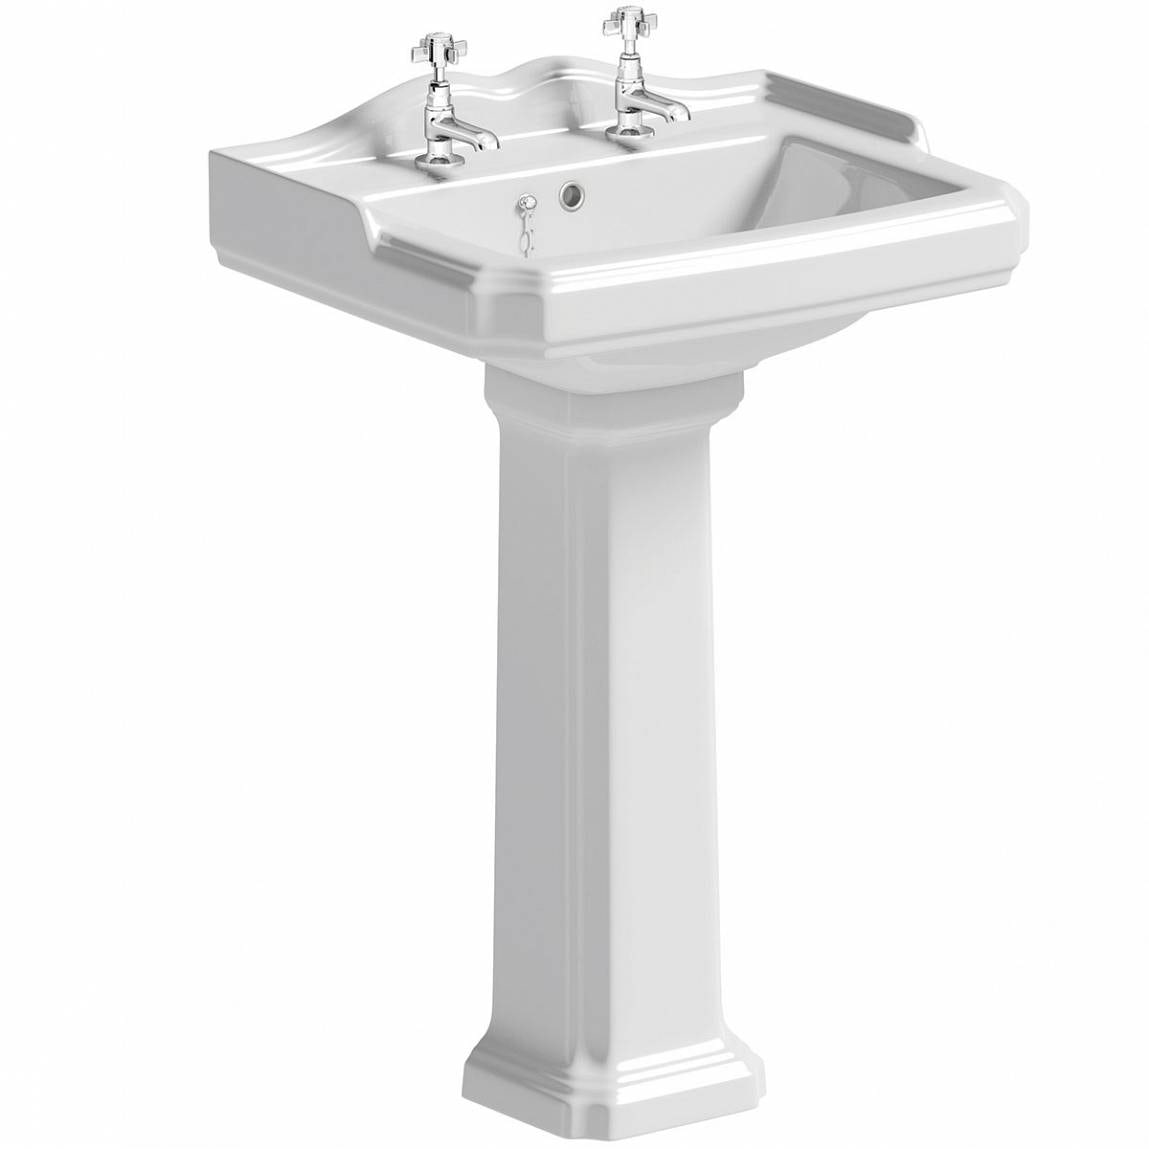 The Bath Co. Winchester 2 tap hole full pedestal basin 600mm with waste